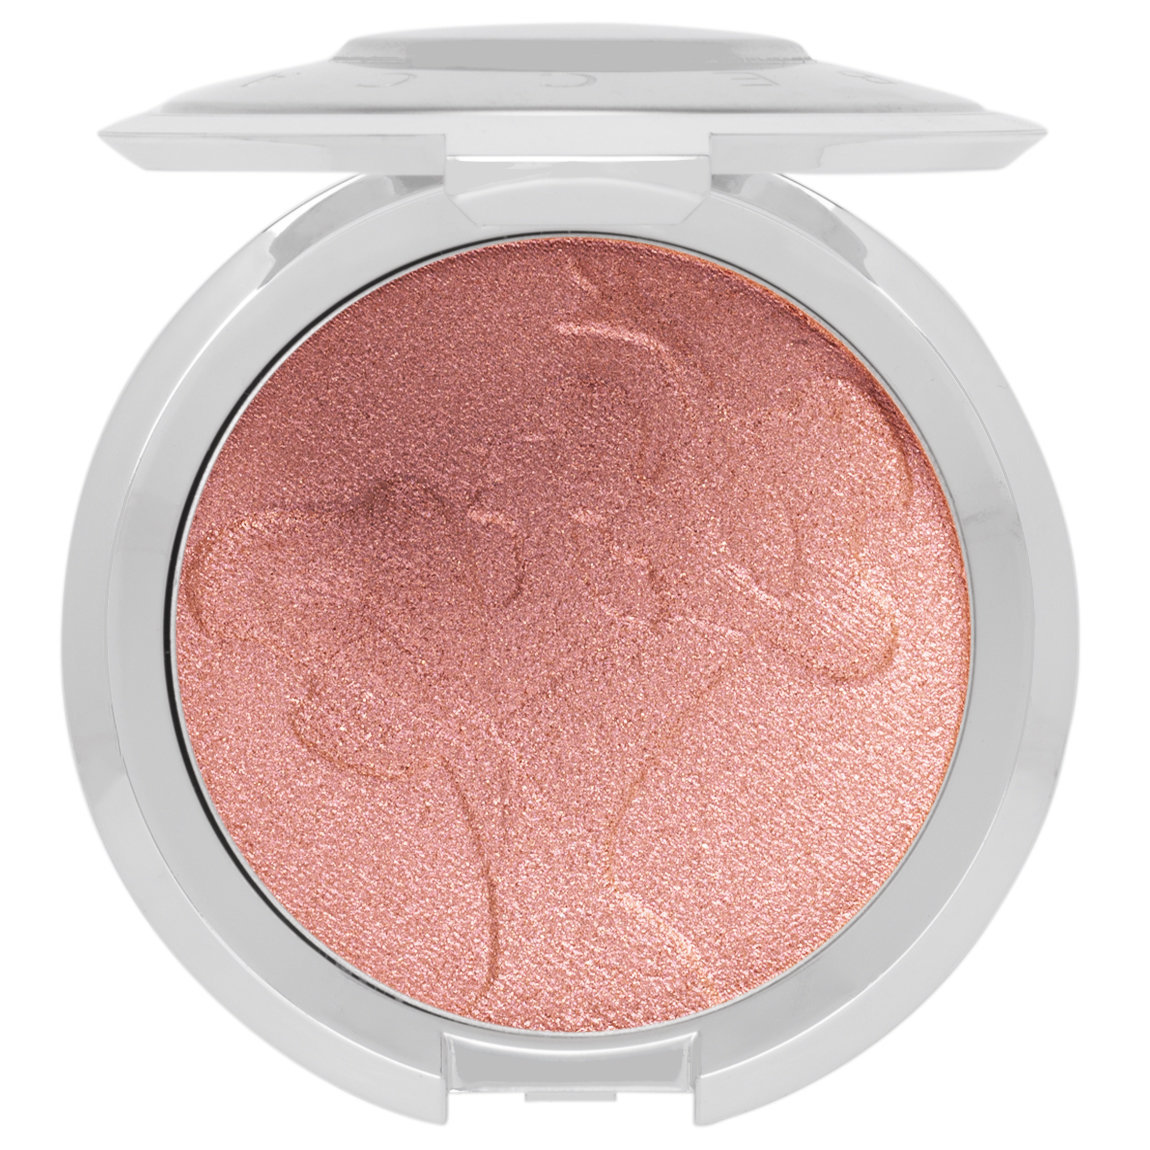 BECCA Shimmering Skin Perfector Pressed Spanish Rose Glow product swatch.